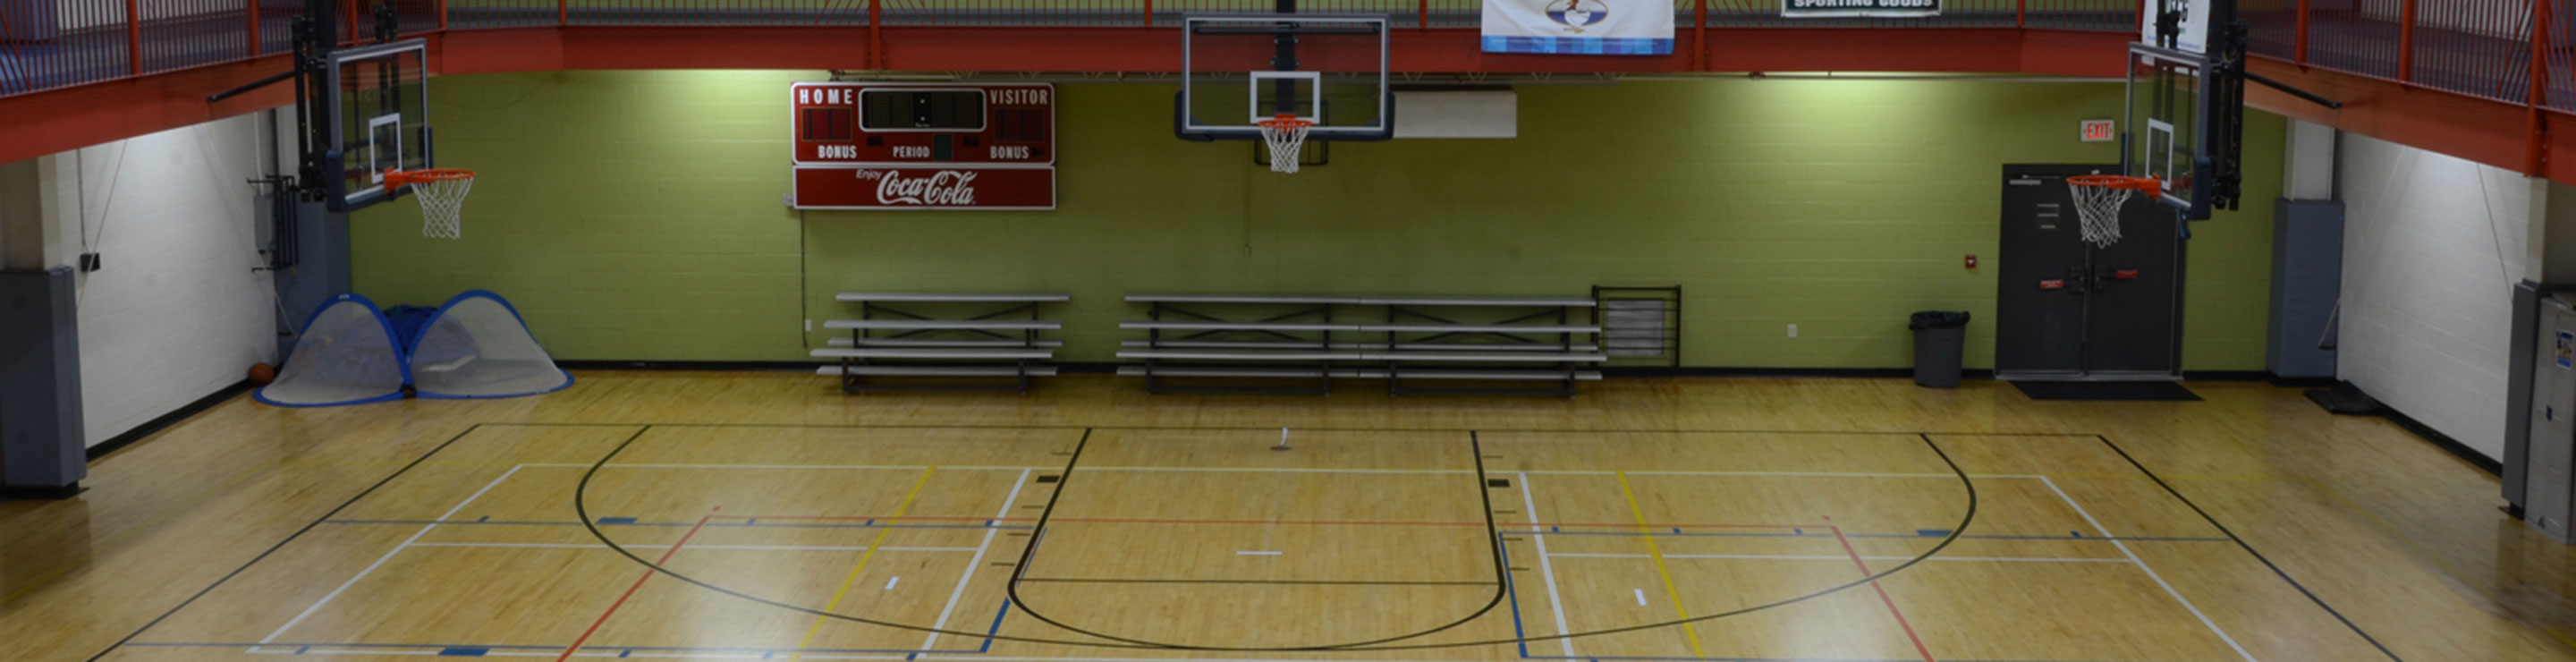 Robertson County Family YMCA Basketball Gym